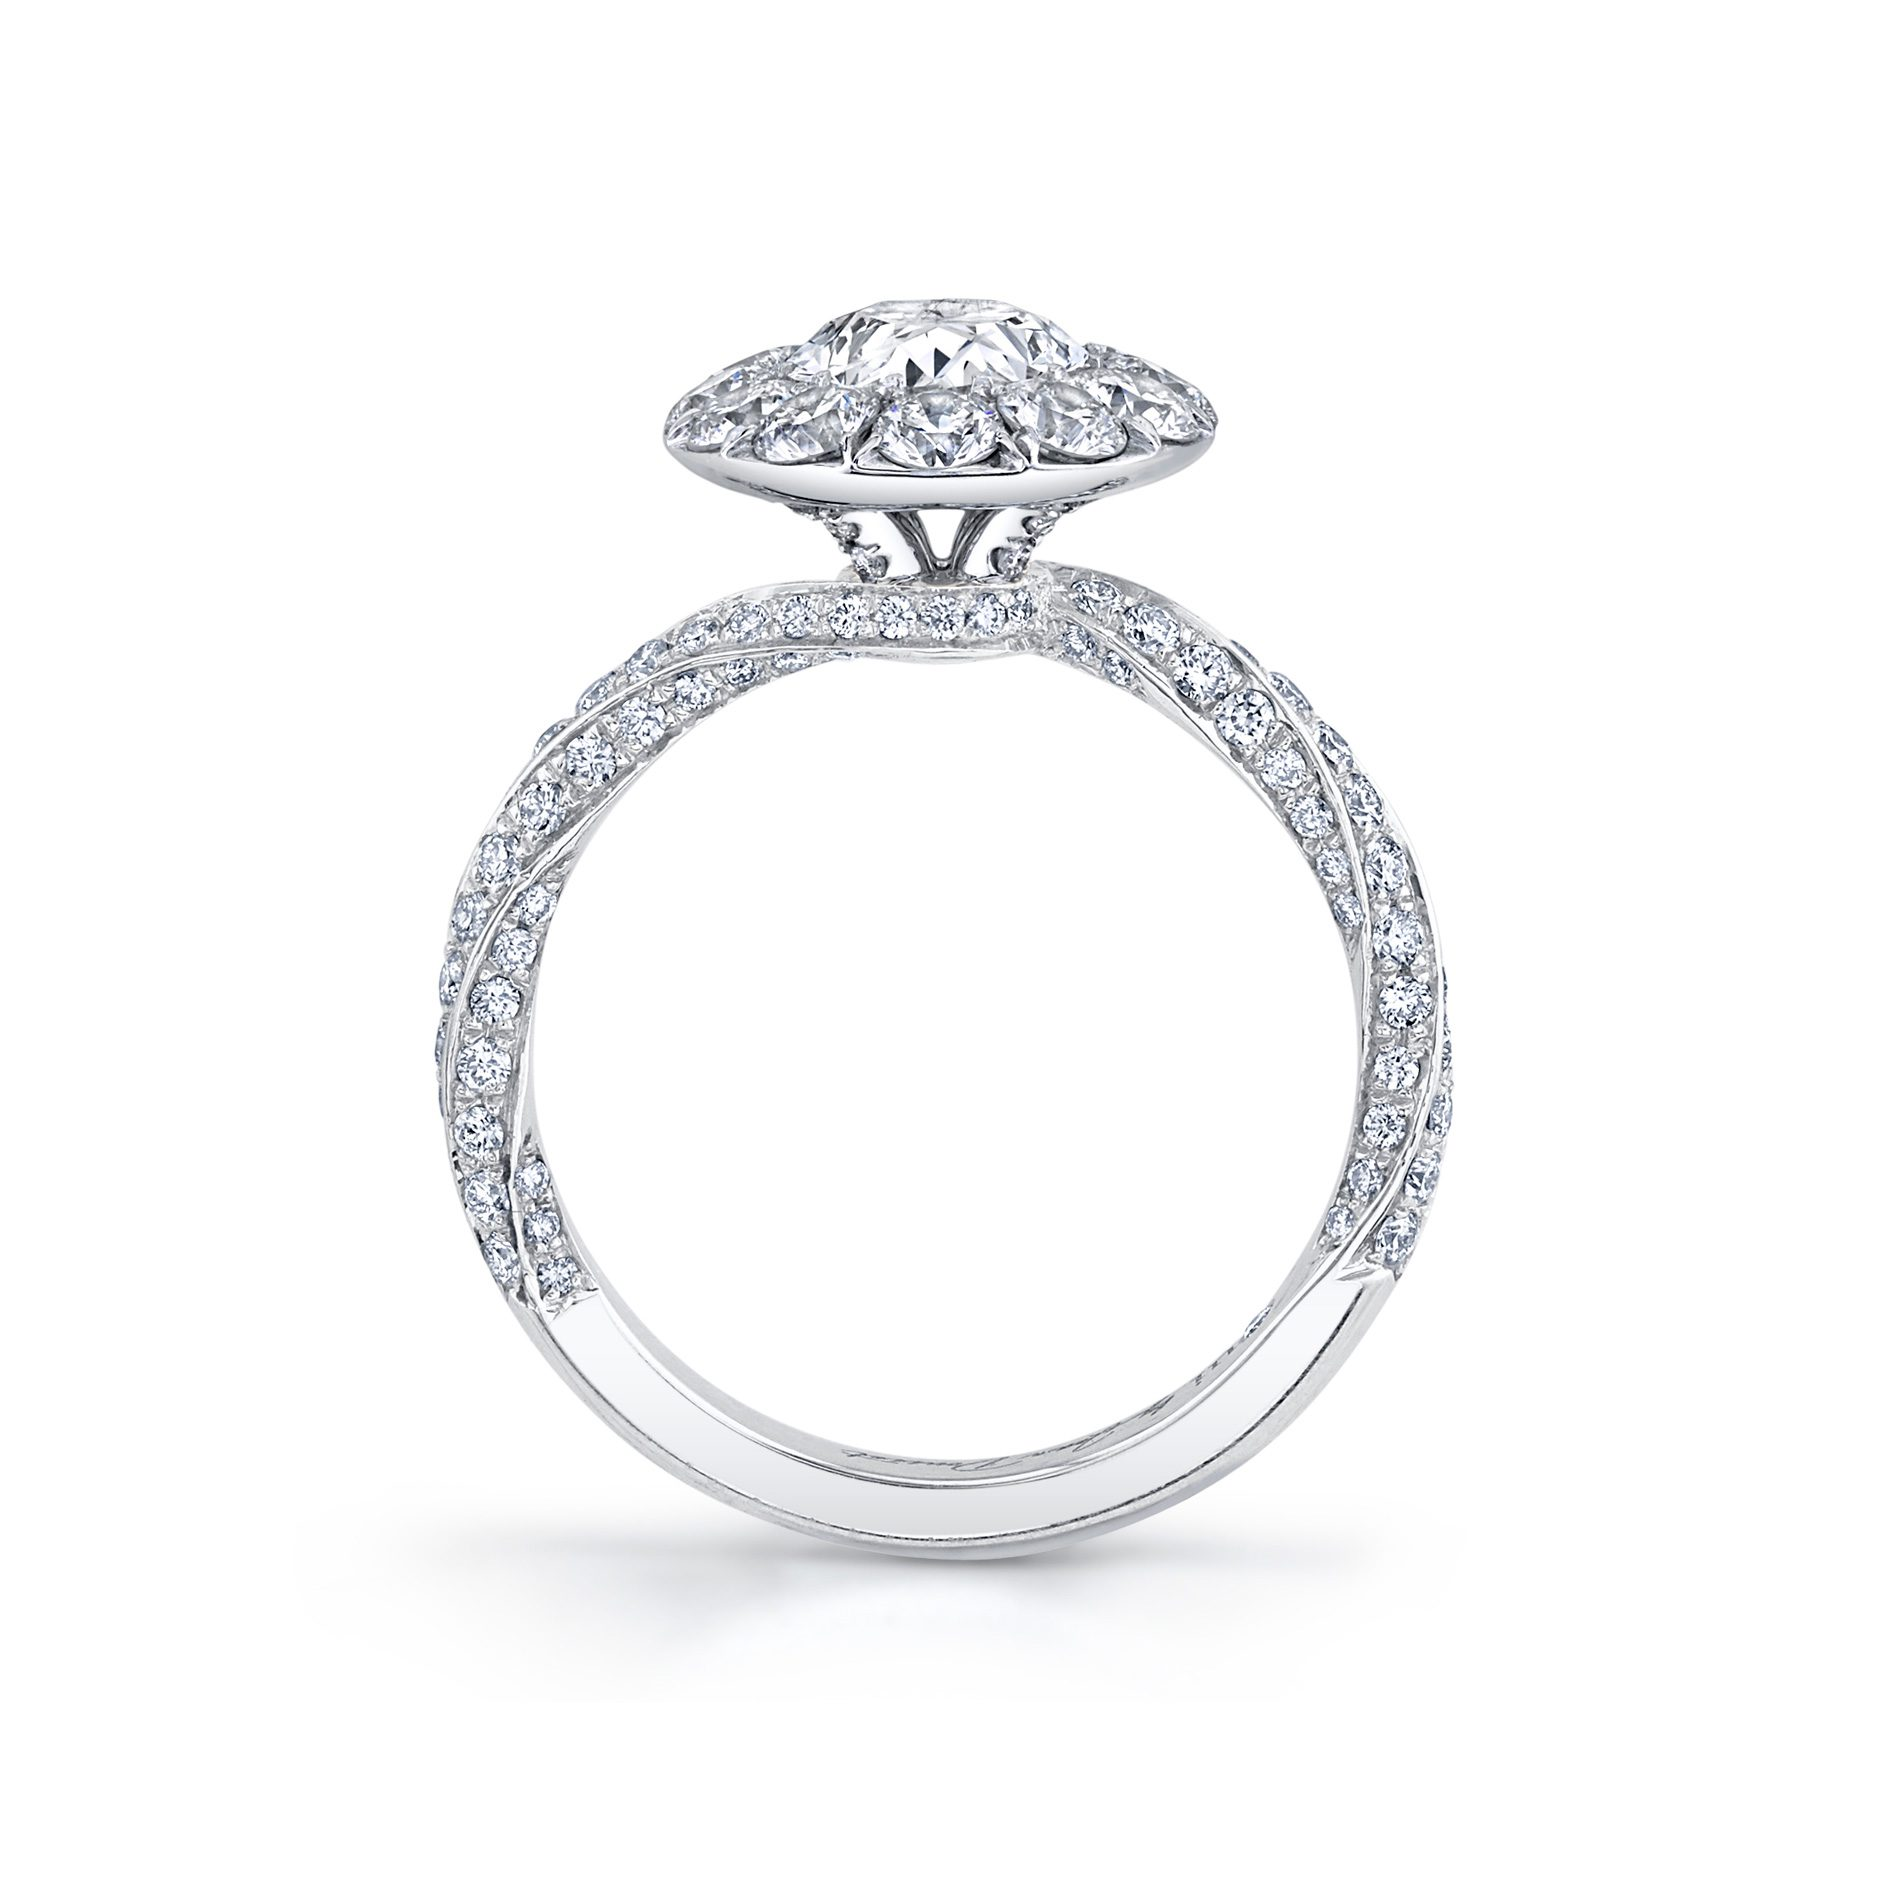 Camille Floating Oval Seamless Solitaire® Engagement Ring with diamond pavé in 18k White Gold Standing View by Oui by Jean Dousset